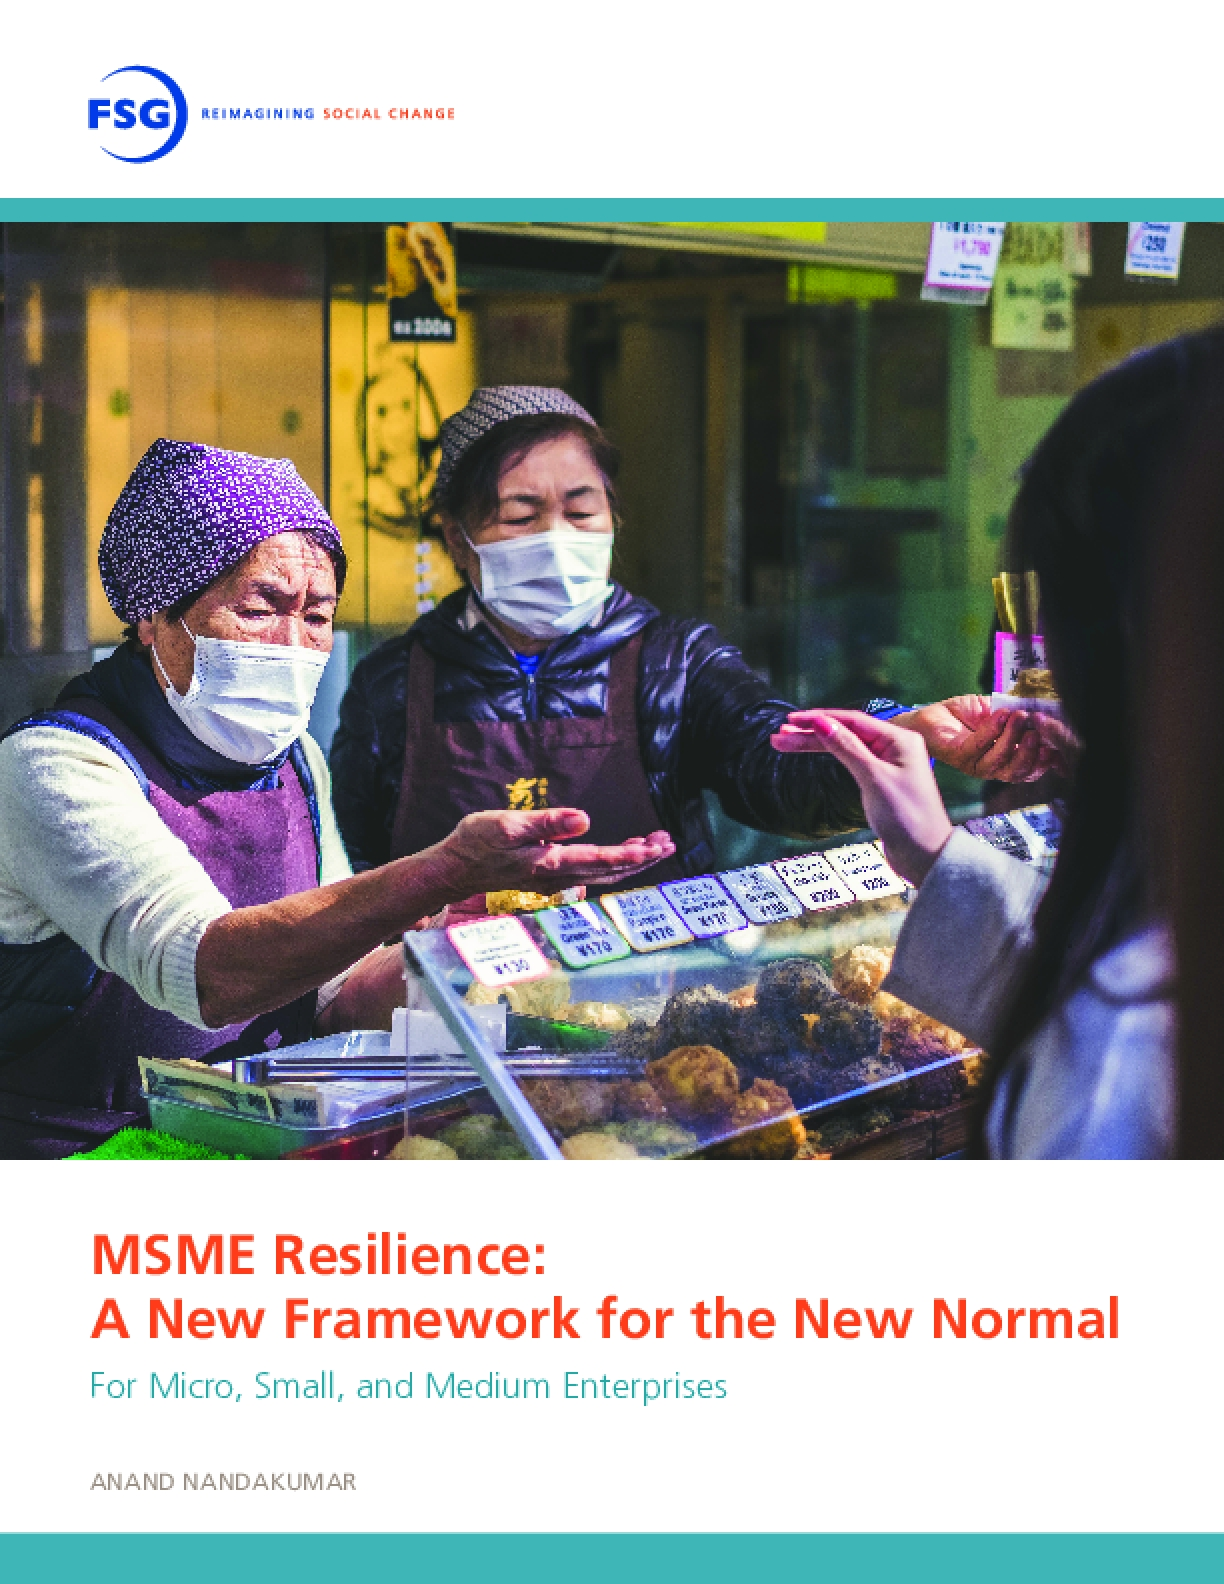 MSME Resilience:  A New Framework for the New Normal